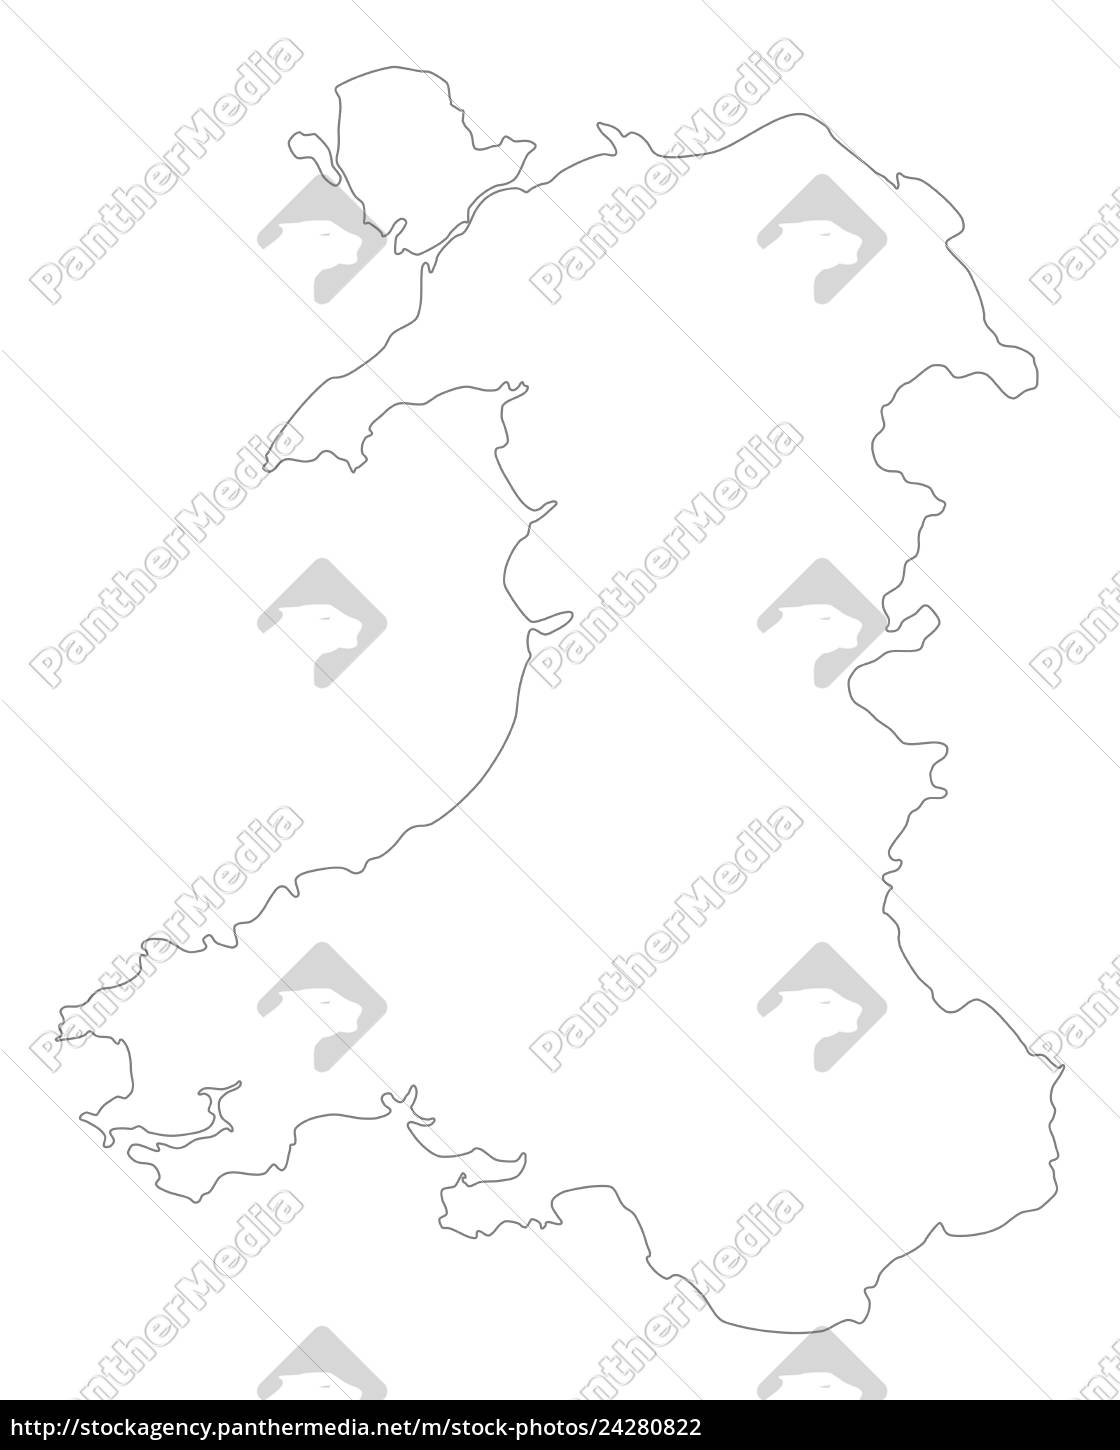 Kort Over Wales Stockphoto 24280822 Panthermedia Billedbureau